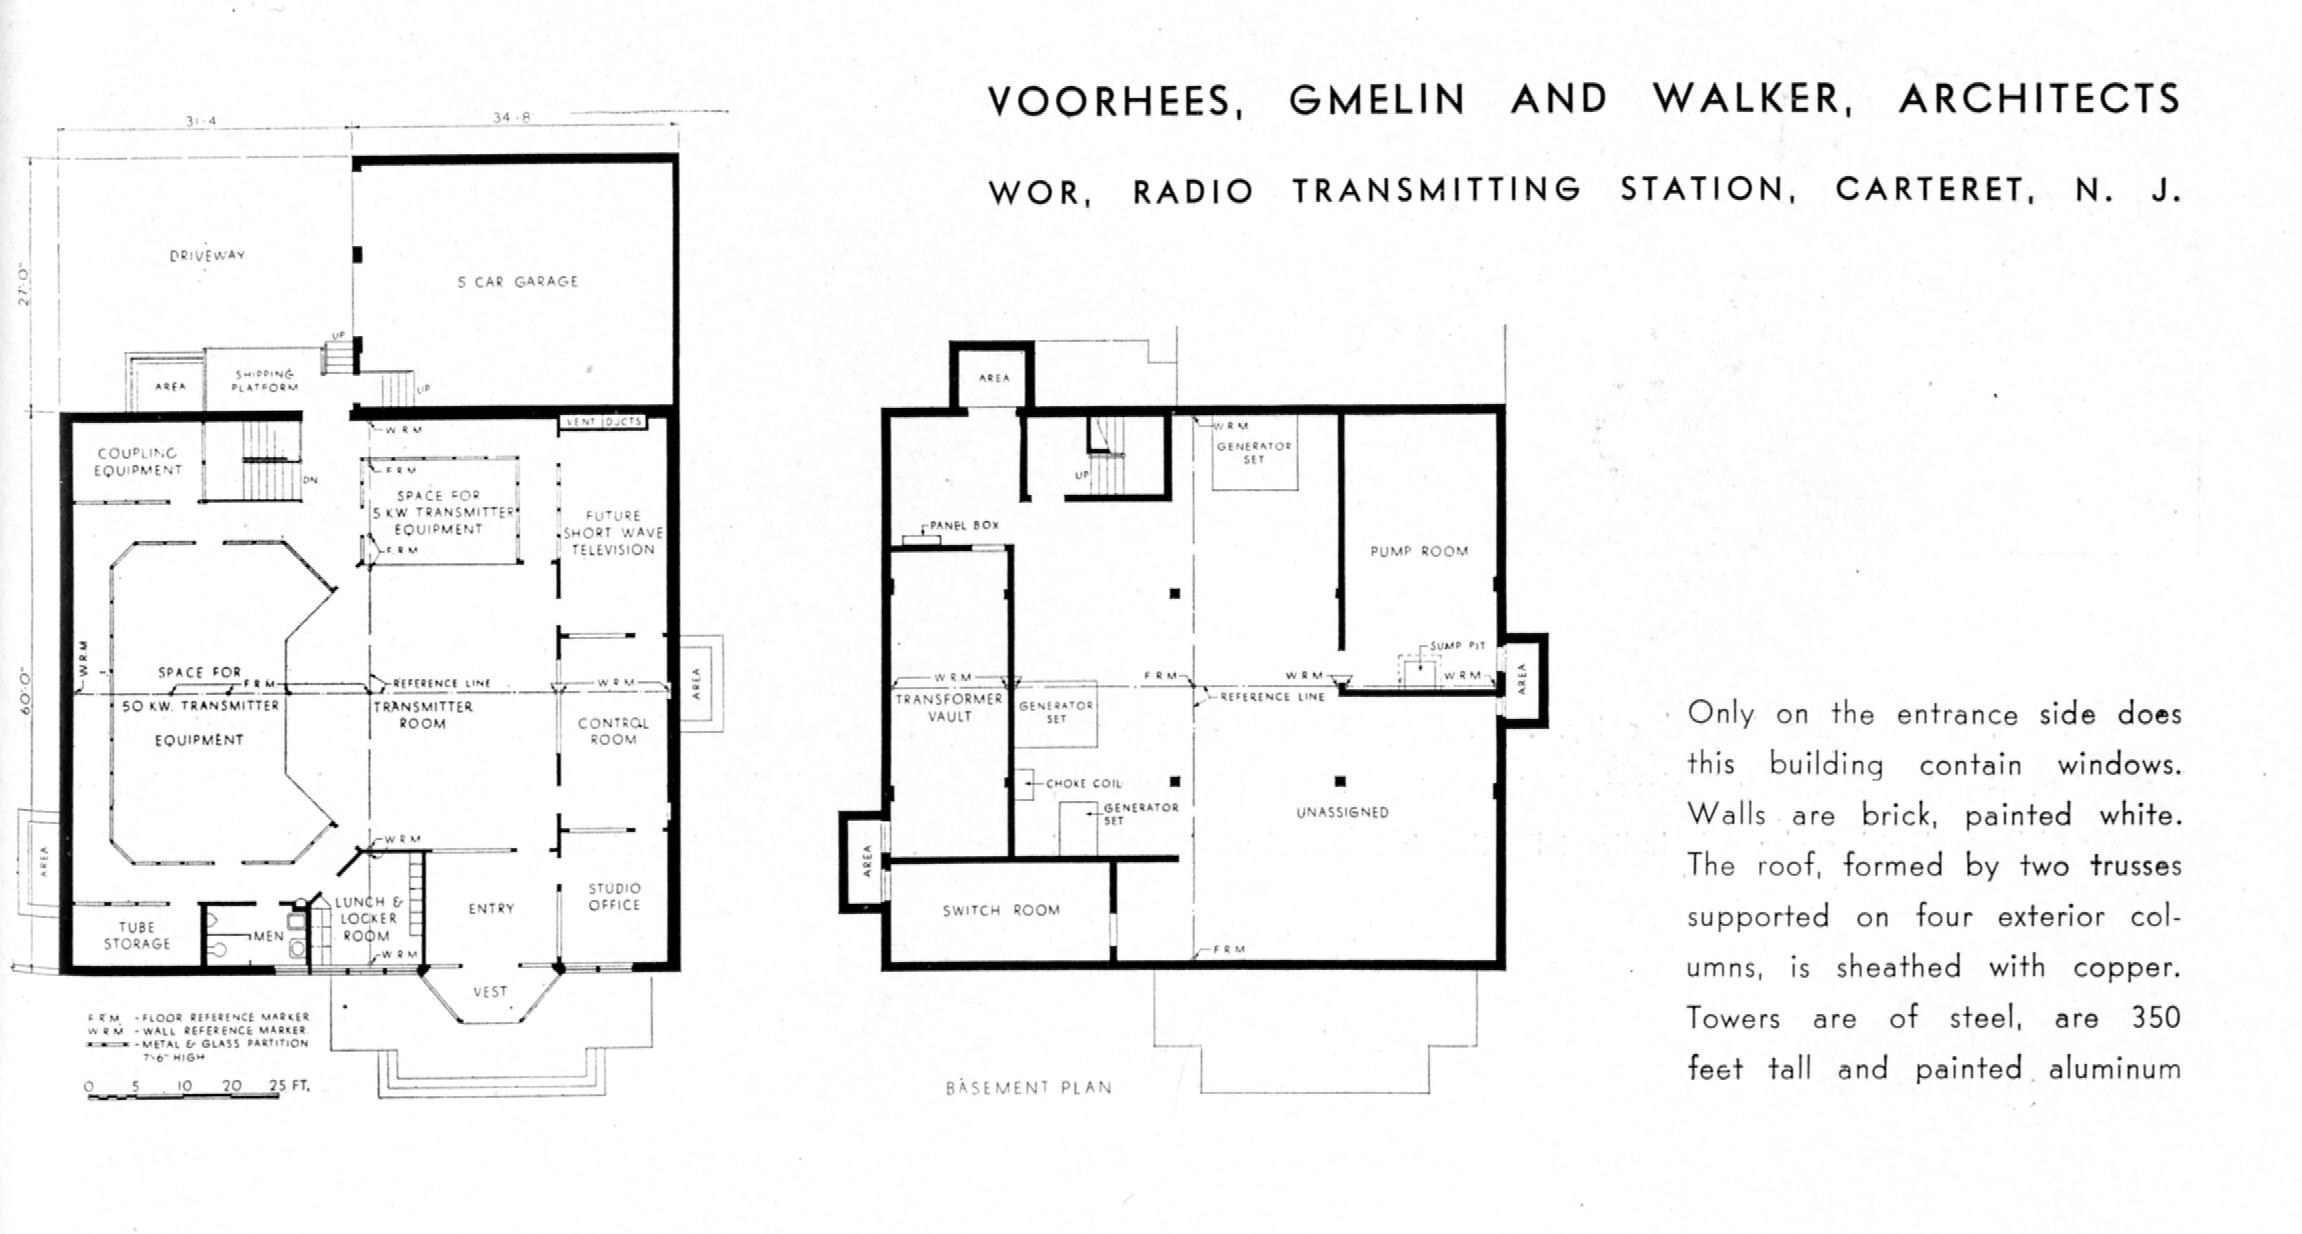 Wires Walls And Wireless Notes Toward An Investigation Of Radio Wiring In Basement Fig 6 Voorhees Gmelin Walker Wor Transmitting Station